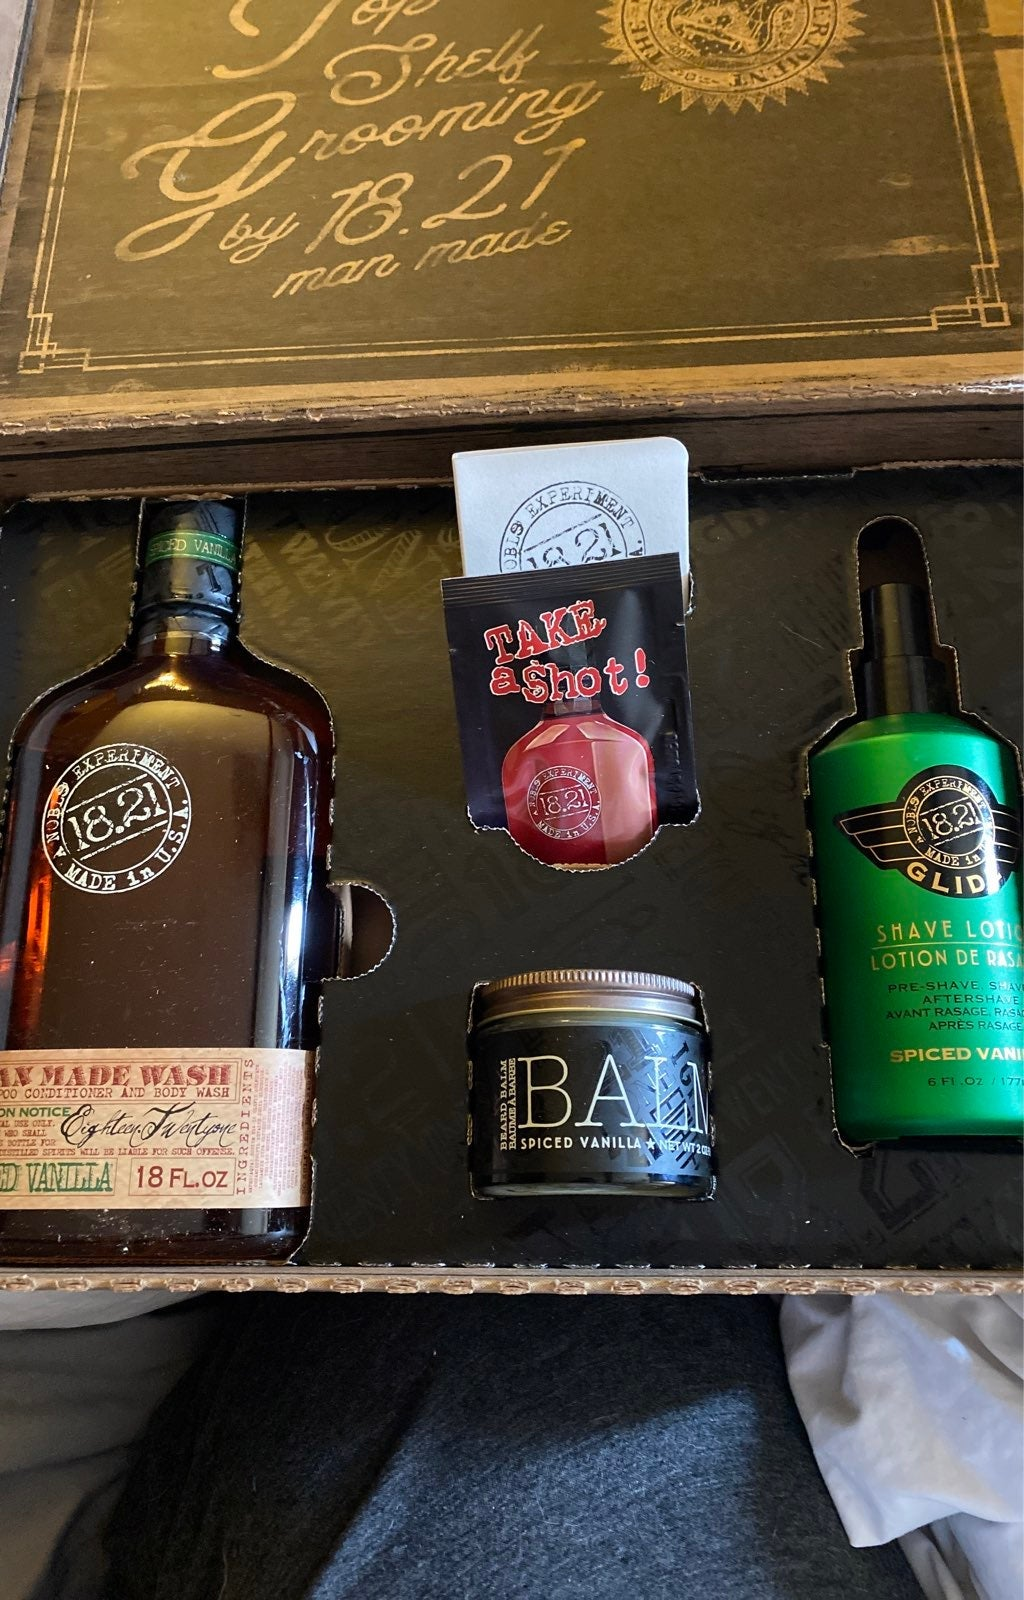 1821 mens grooming products lot